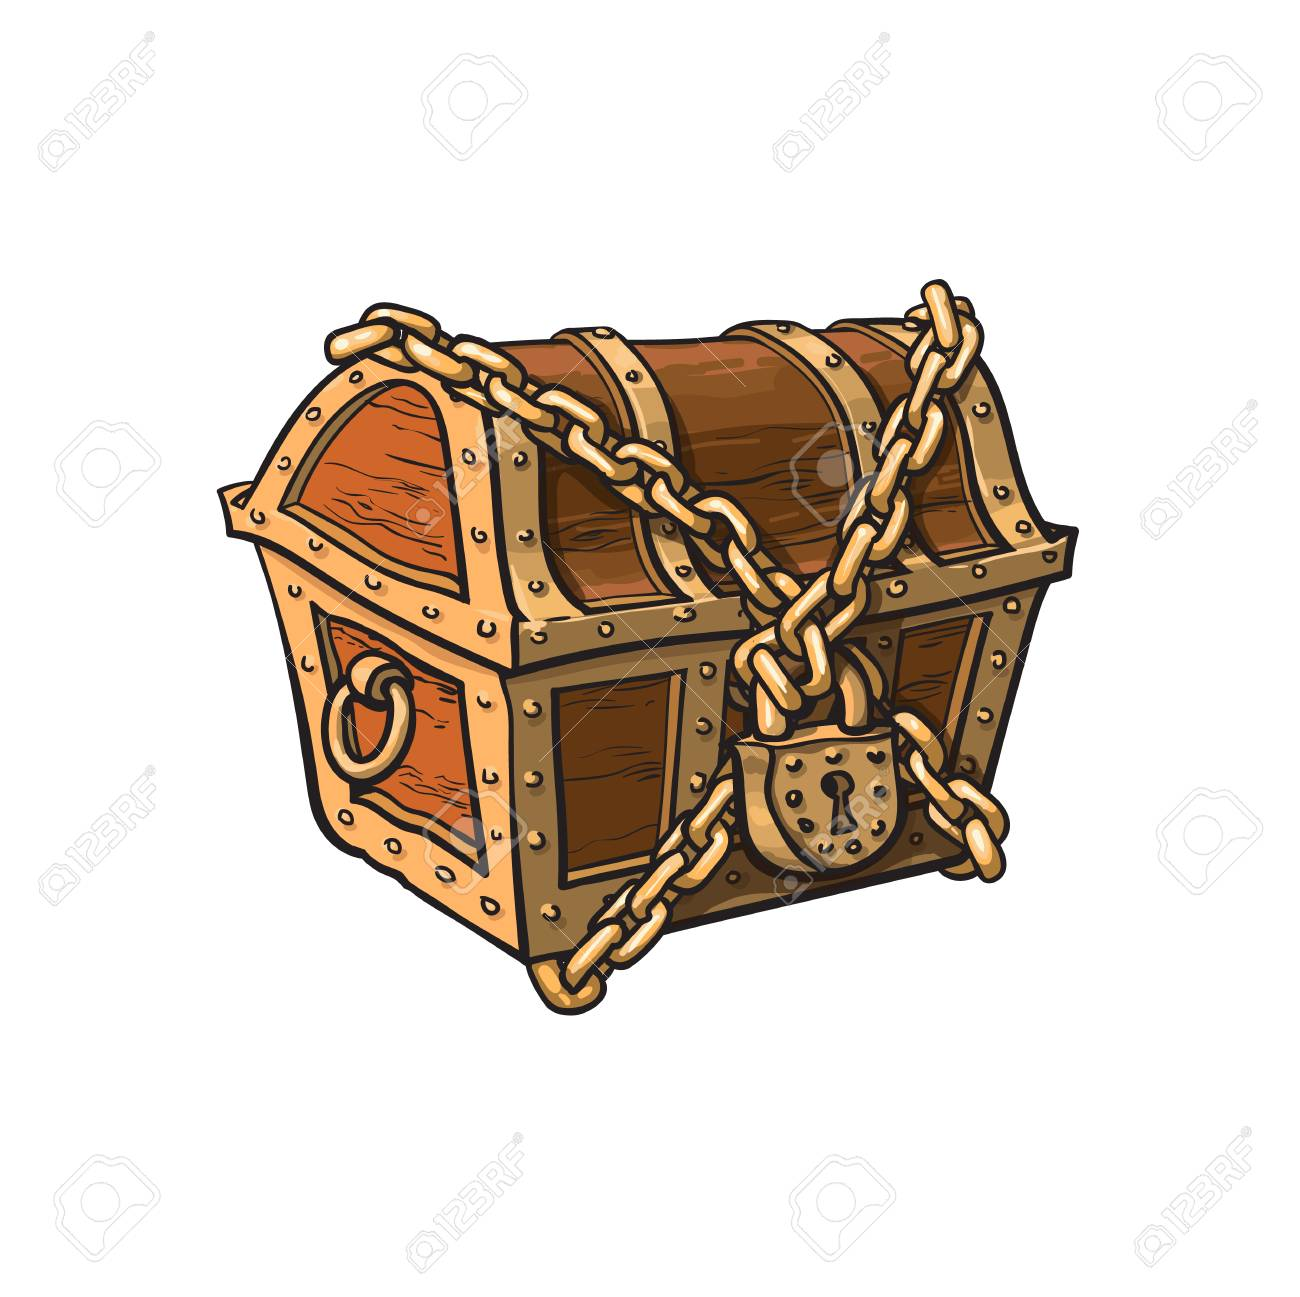 vector closed locked chained wooden treasure chest. Isolated illustration on a white background. Flat cartoon symbol of adventure, pirates, risk profit and wealth. - 83482981